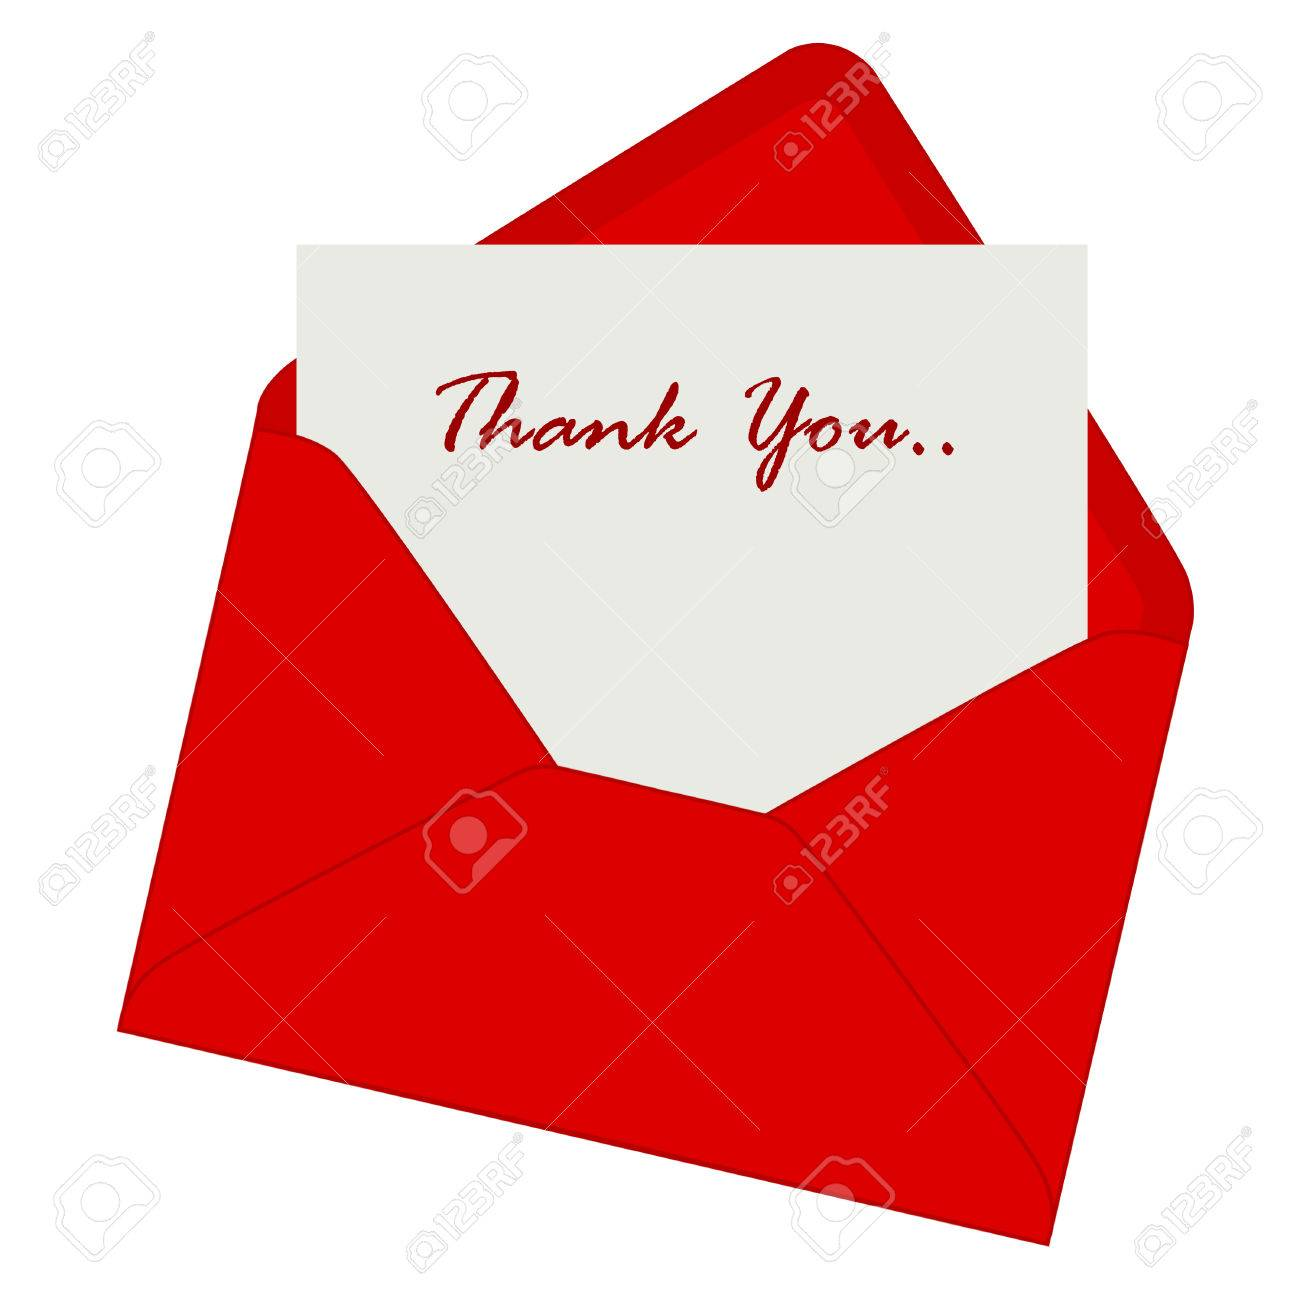 appreciation stock photos images royalty appreciation images appreciation thank you note inside a red envelope illustration isolated on white background